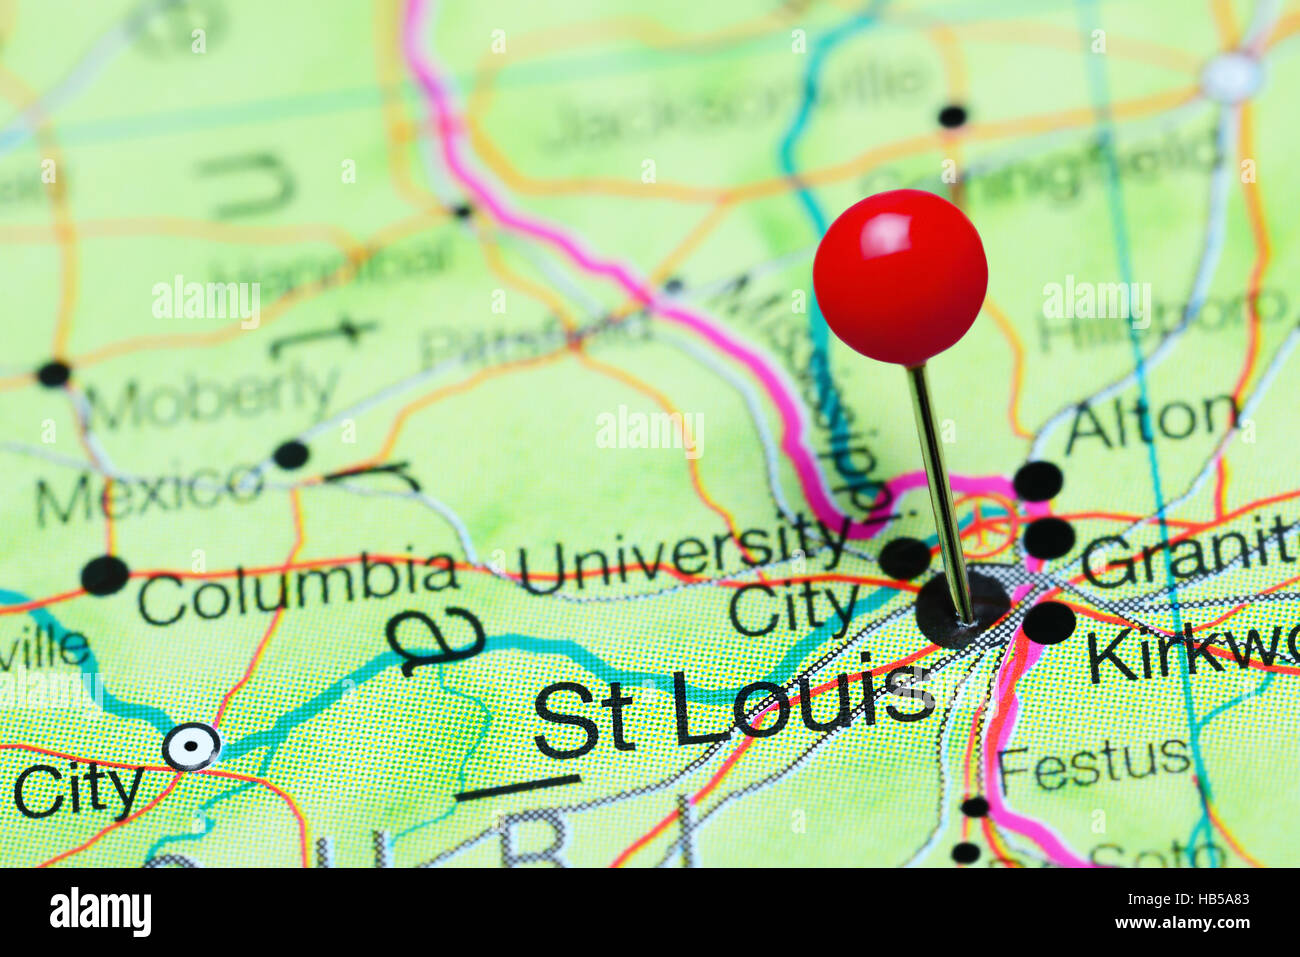 St Louis pinned on a map of Missouri, USA Stock Photo ... on salt lake city on us map, portland on us map, kalamazoo on us map, anchorage on us map, san francisco on us map, jackson on us map, chicago on us map, manchester on us map, lincoln on us map, madison on us map, boston on us map, cleveland on us map, durham on us map, milwaukee on us map, sacramento on us map, oakland on us map, little rock on us map, new orleans on us map, loudoun county on us map, independence on us map,